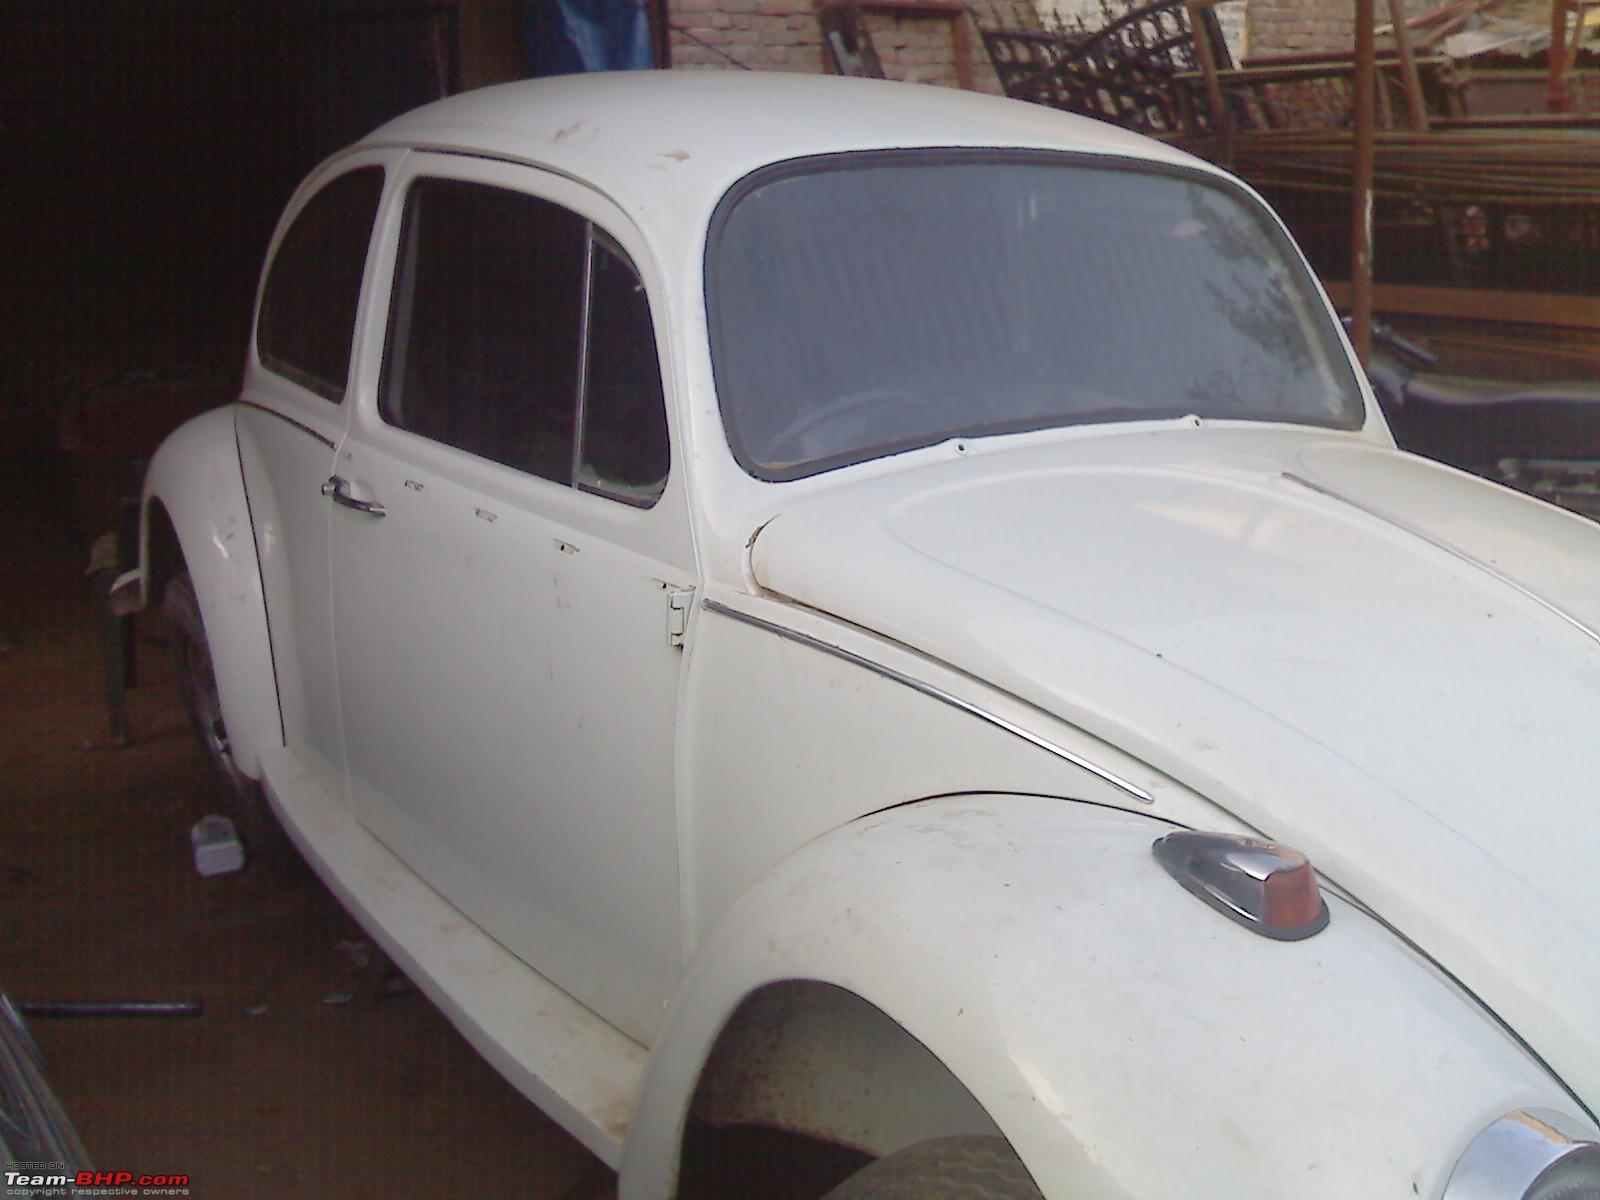 Just bought a 1974 VW Beetle, some parts needed - Team-BHP